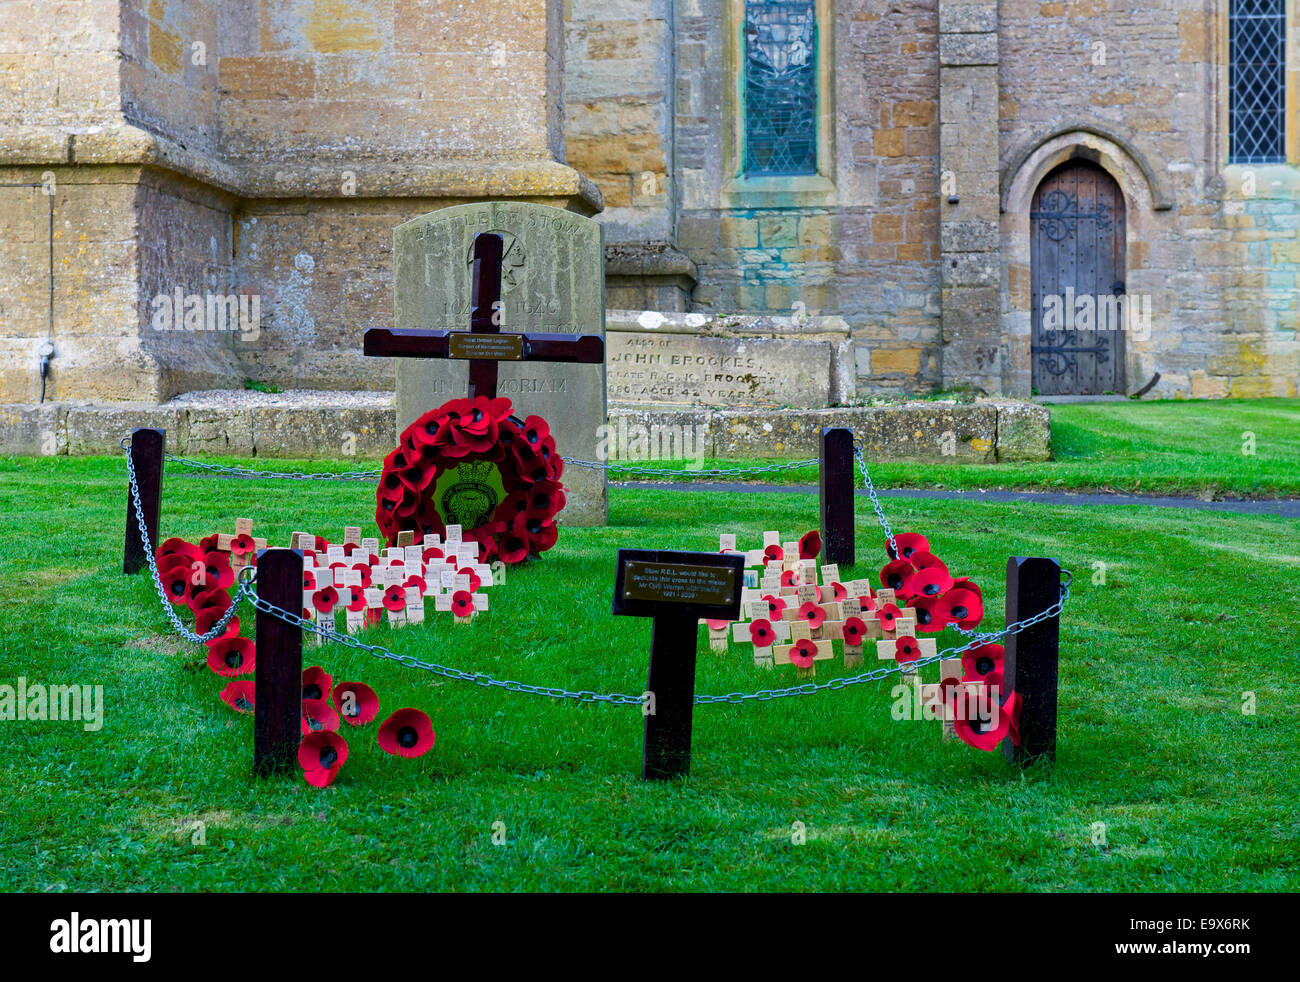 Display of poppies for Remembrance Day, in the churchyard of the parish church in Stow-in-the-Wold, Gloucestershire, - Stock Image